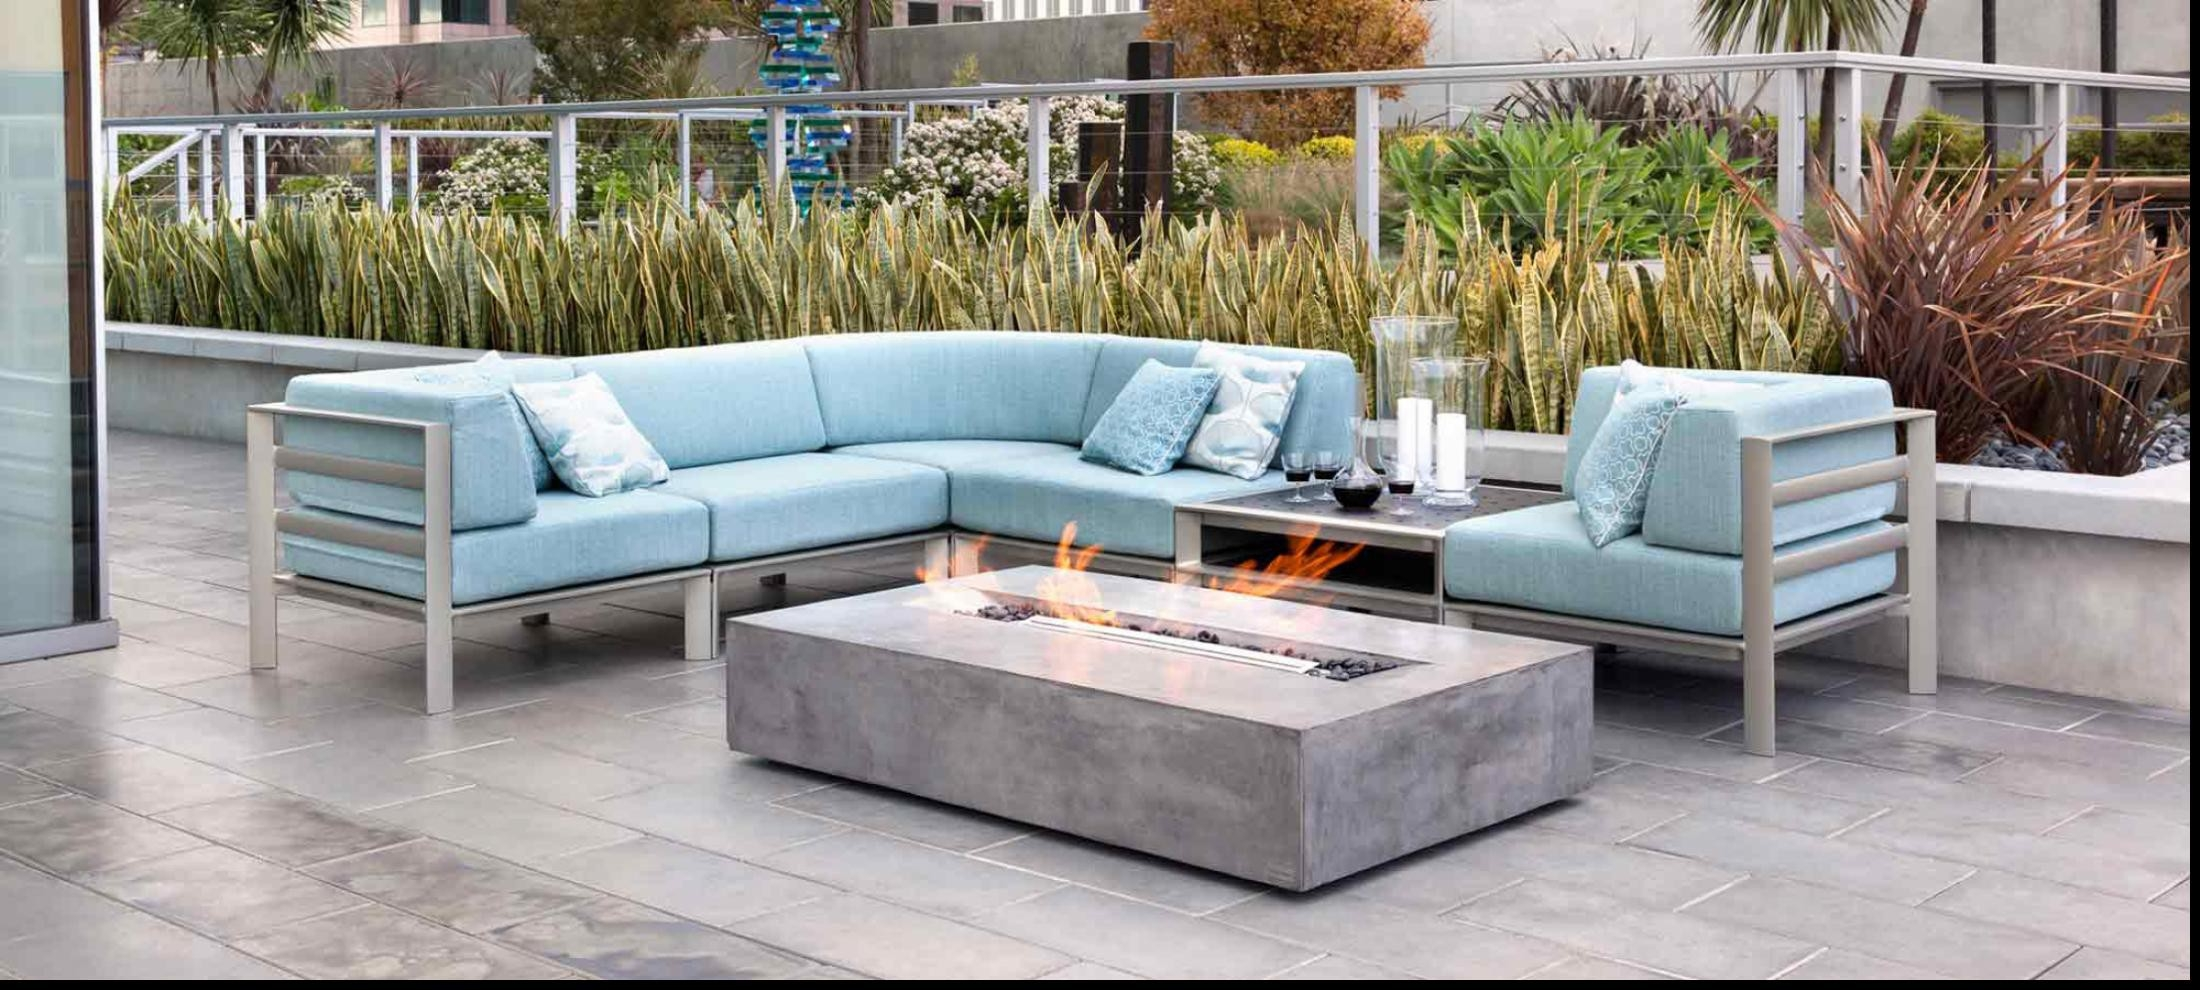 Outdoor Furniture Cozy Outdoor Furniture Okc Also Patio Furniture